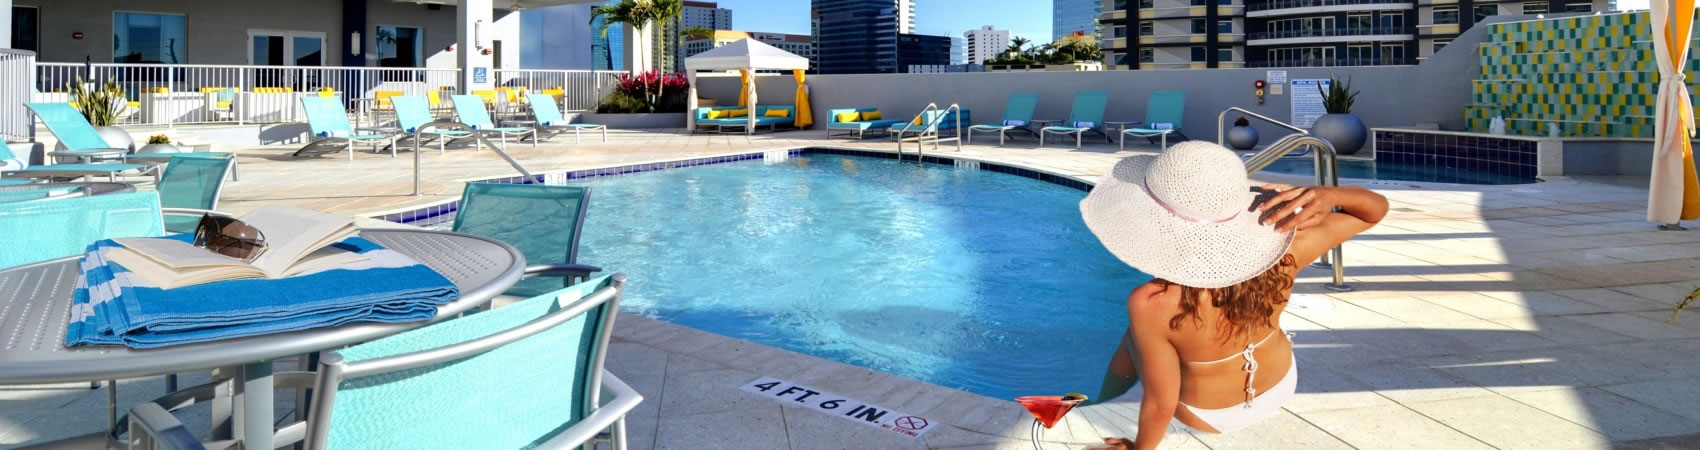 miami brickell hotels enjoy free hot breakfast free internet and more when staying at the hampton inn u0026 suites by hilton miami brickell downtown hotel